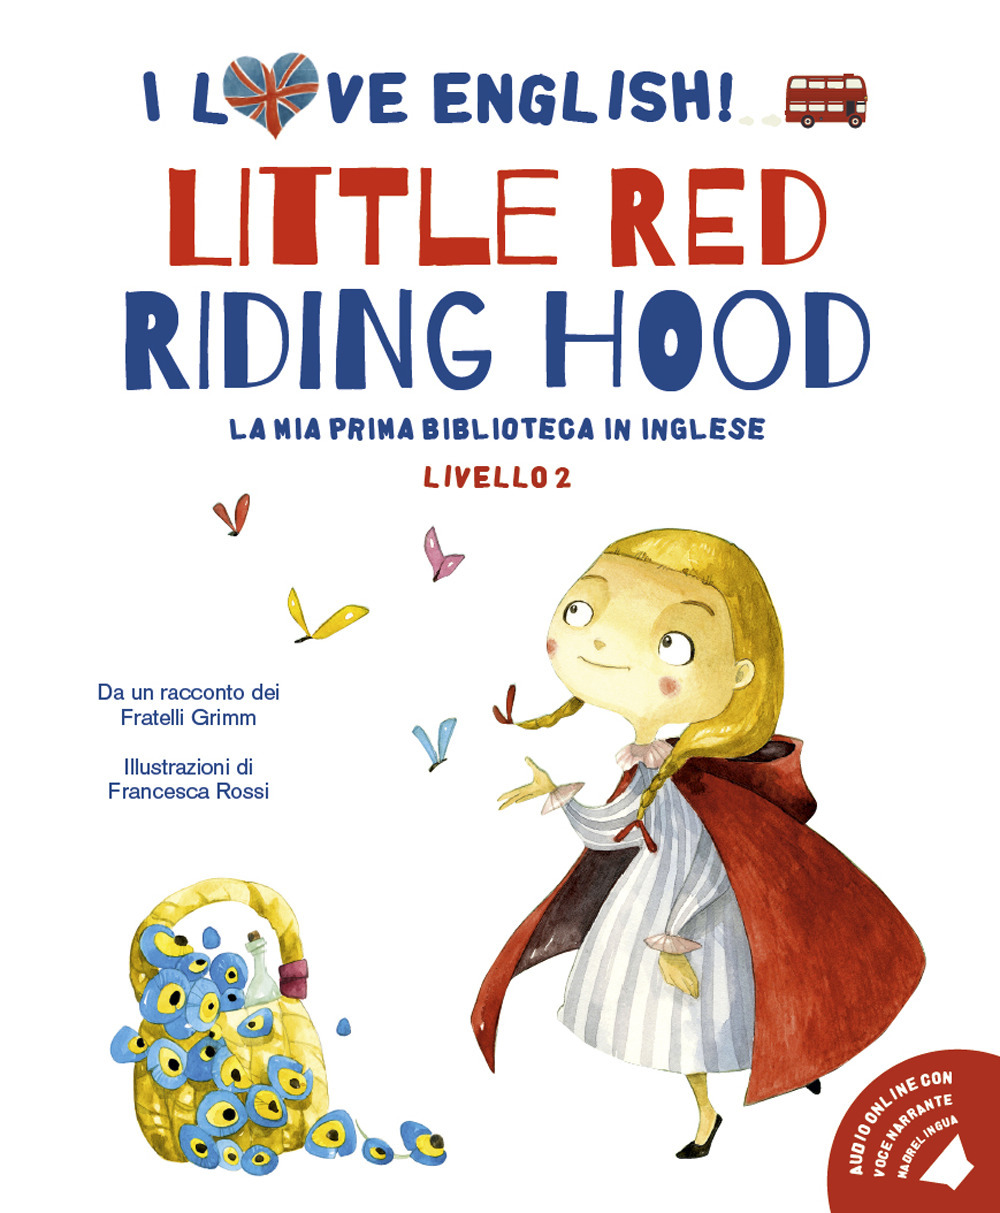 LITTLE RED RIDING HOOD DA UN RACCONTO DEI FRATELLI GRIMM. LIVELLO 2. EDIZ. ITALIANA E INGLESE. CON AUDIOLIBRO - 9788854035652